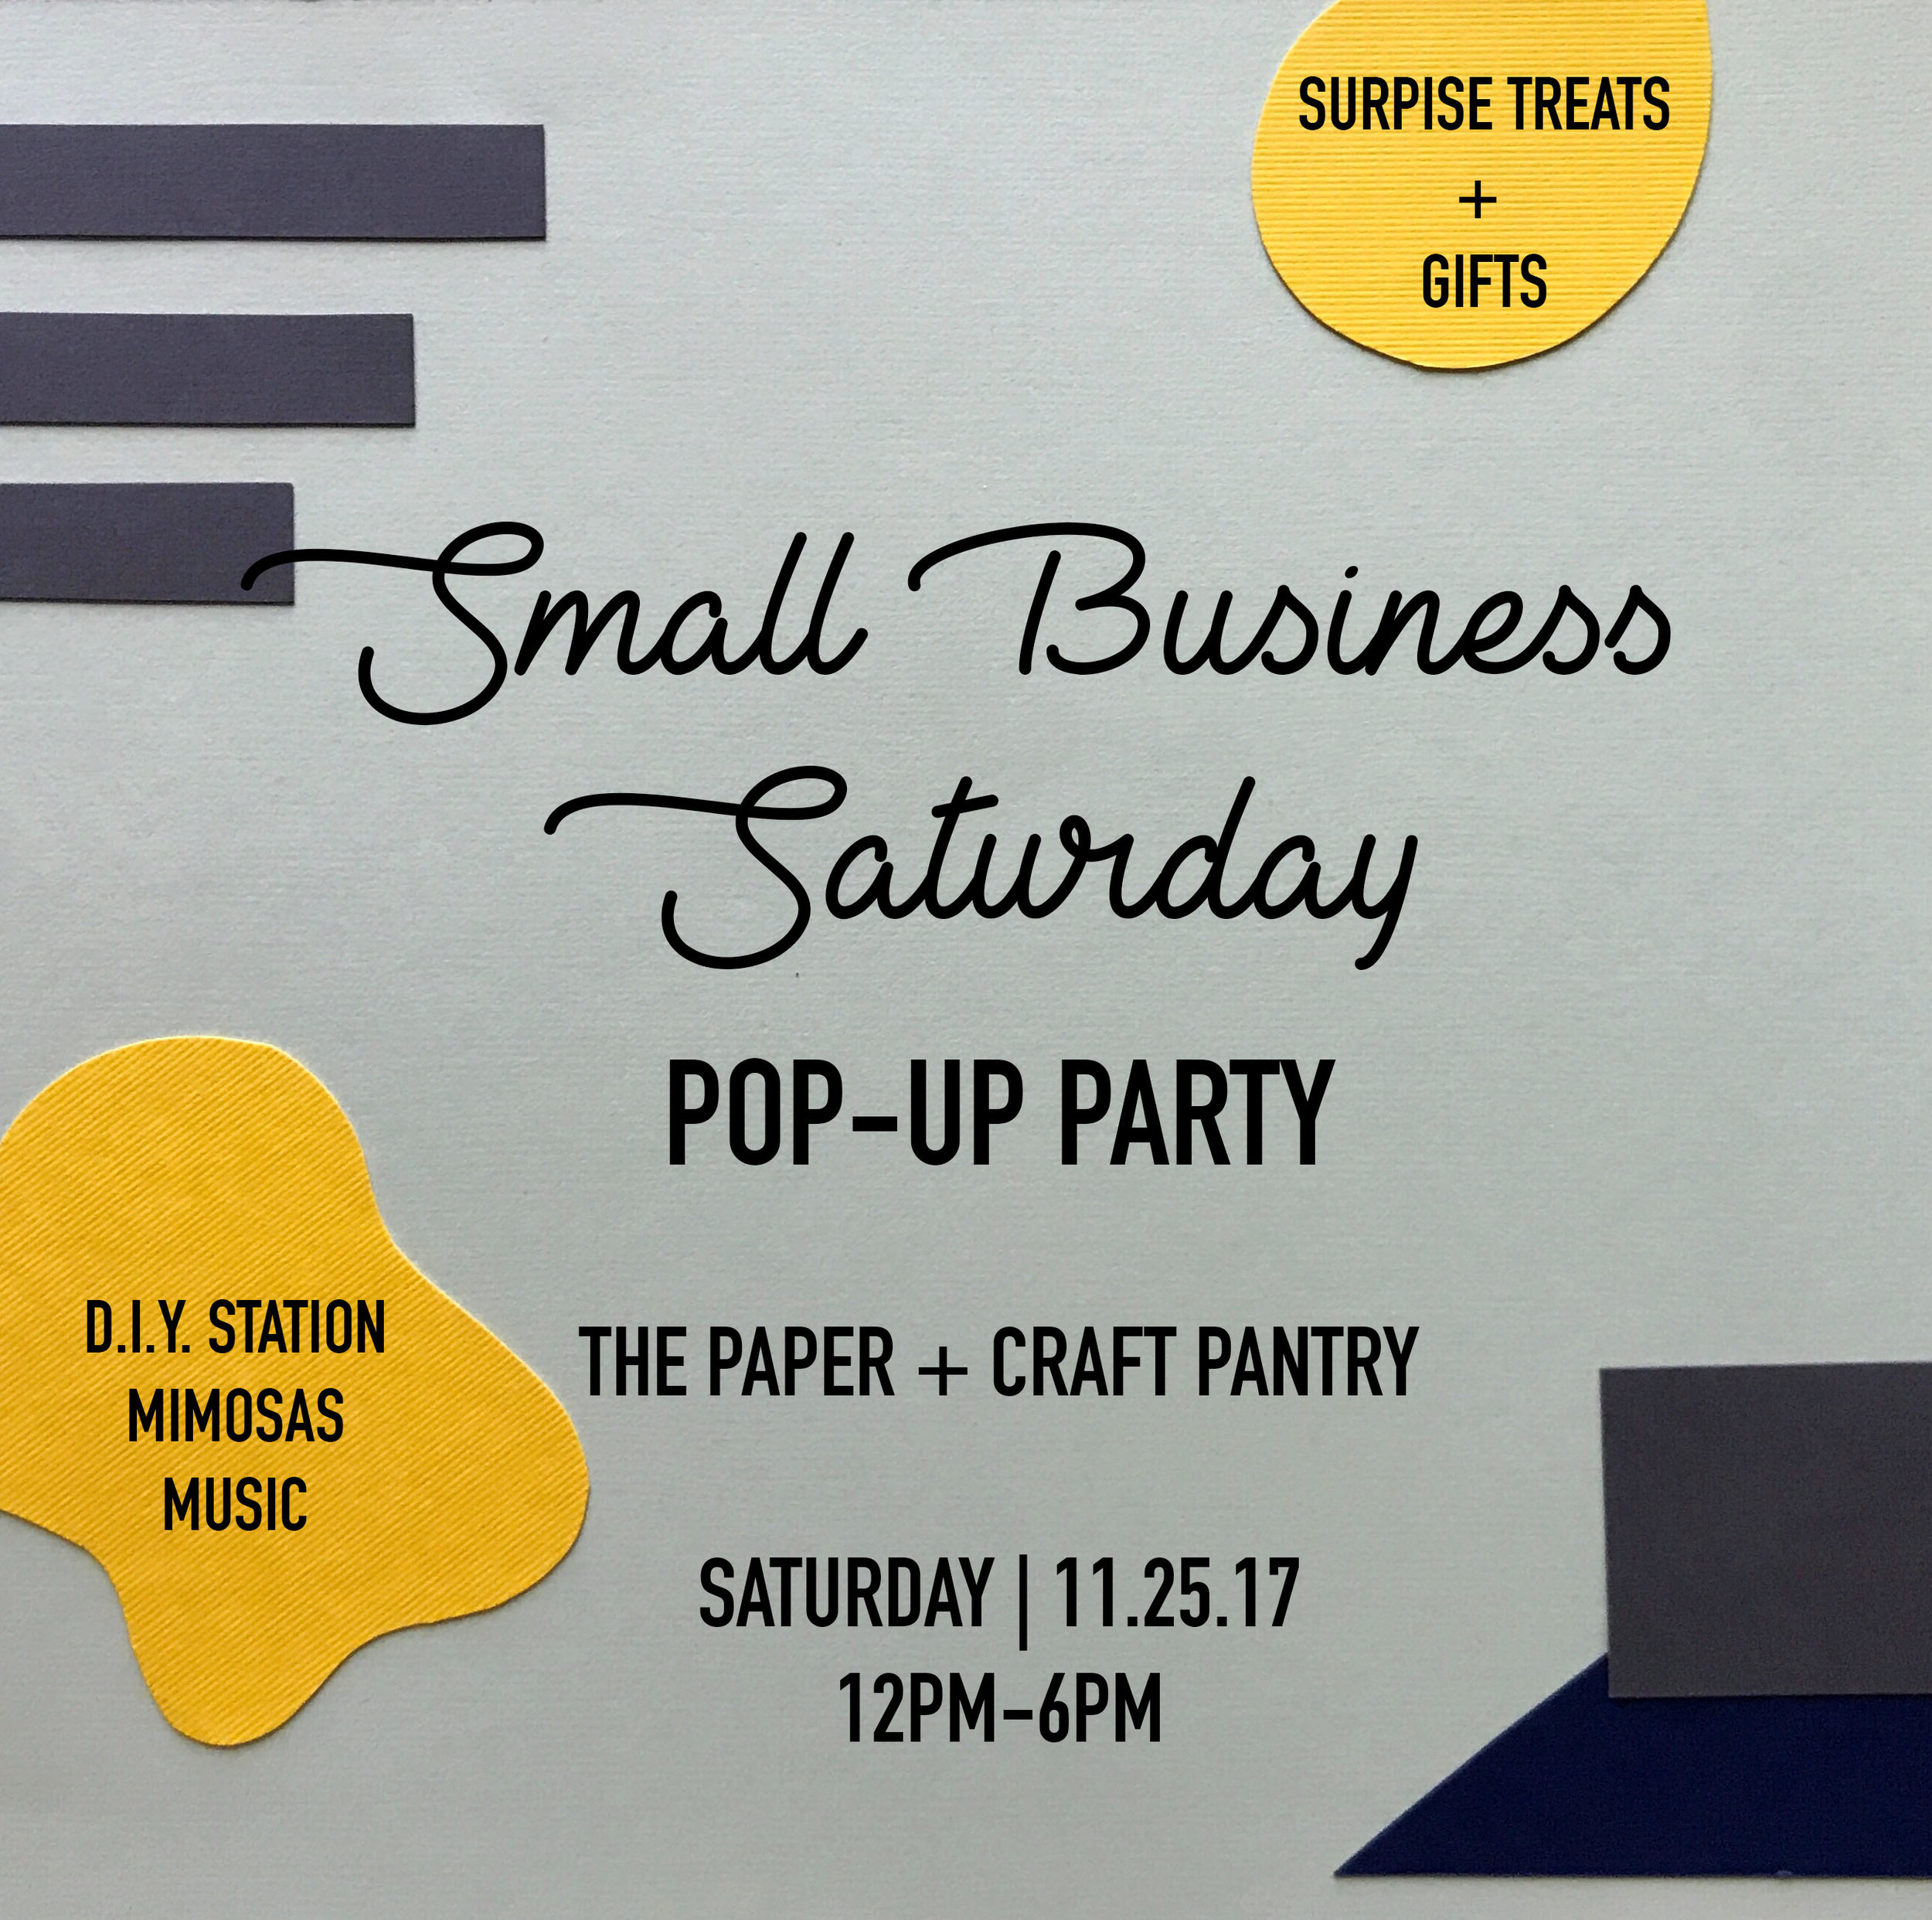 The Paper + Craft Pantry 2017 American Express Small Business Saturday Pop Up